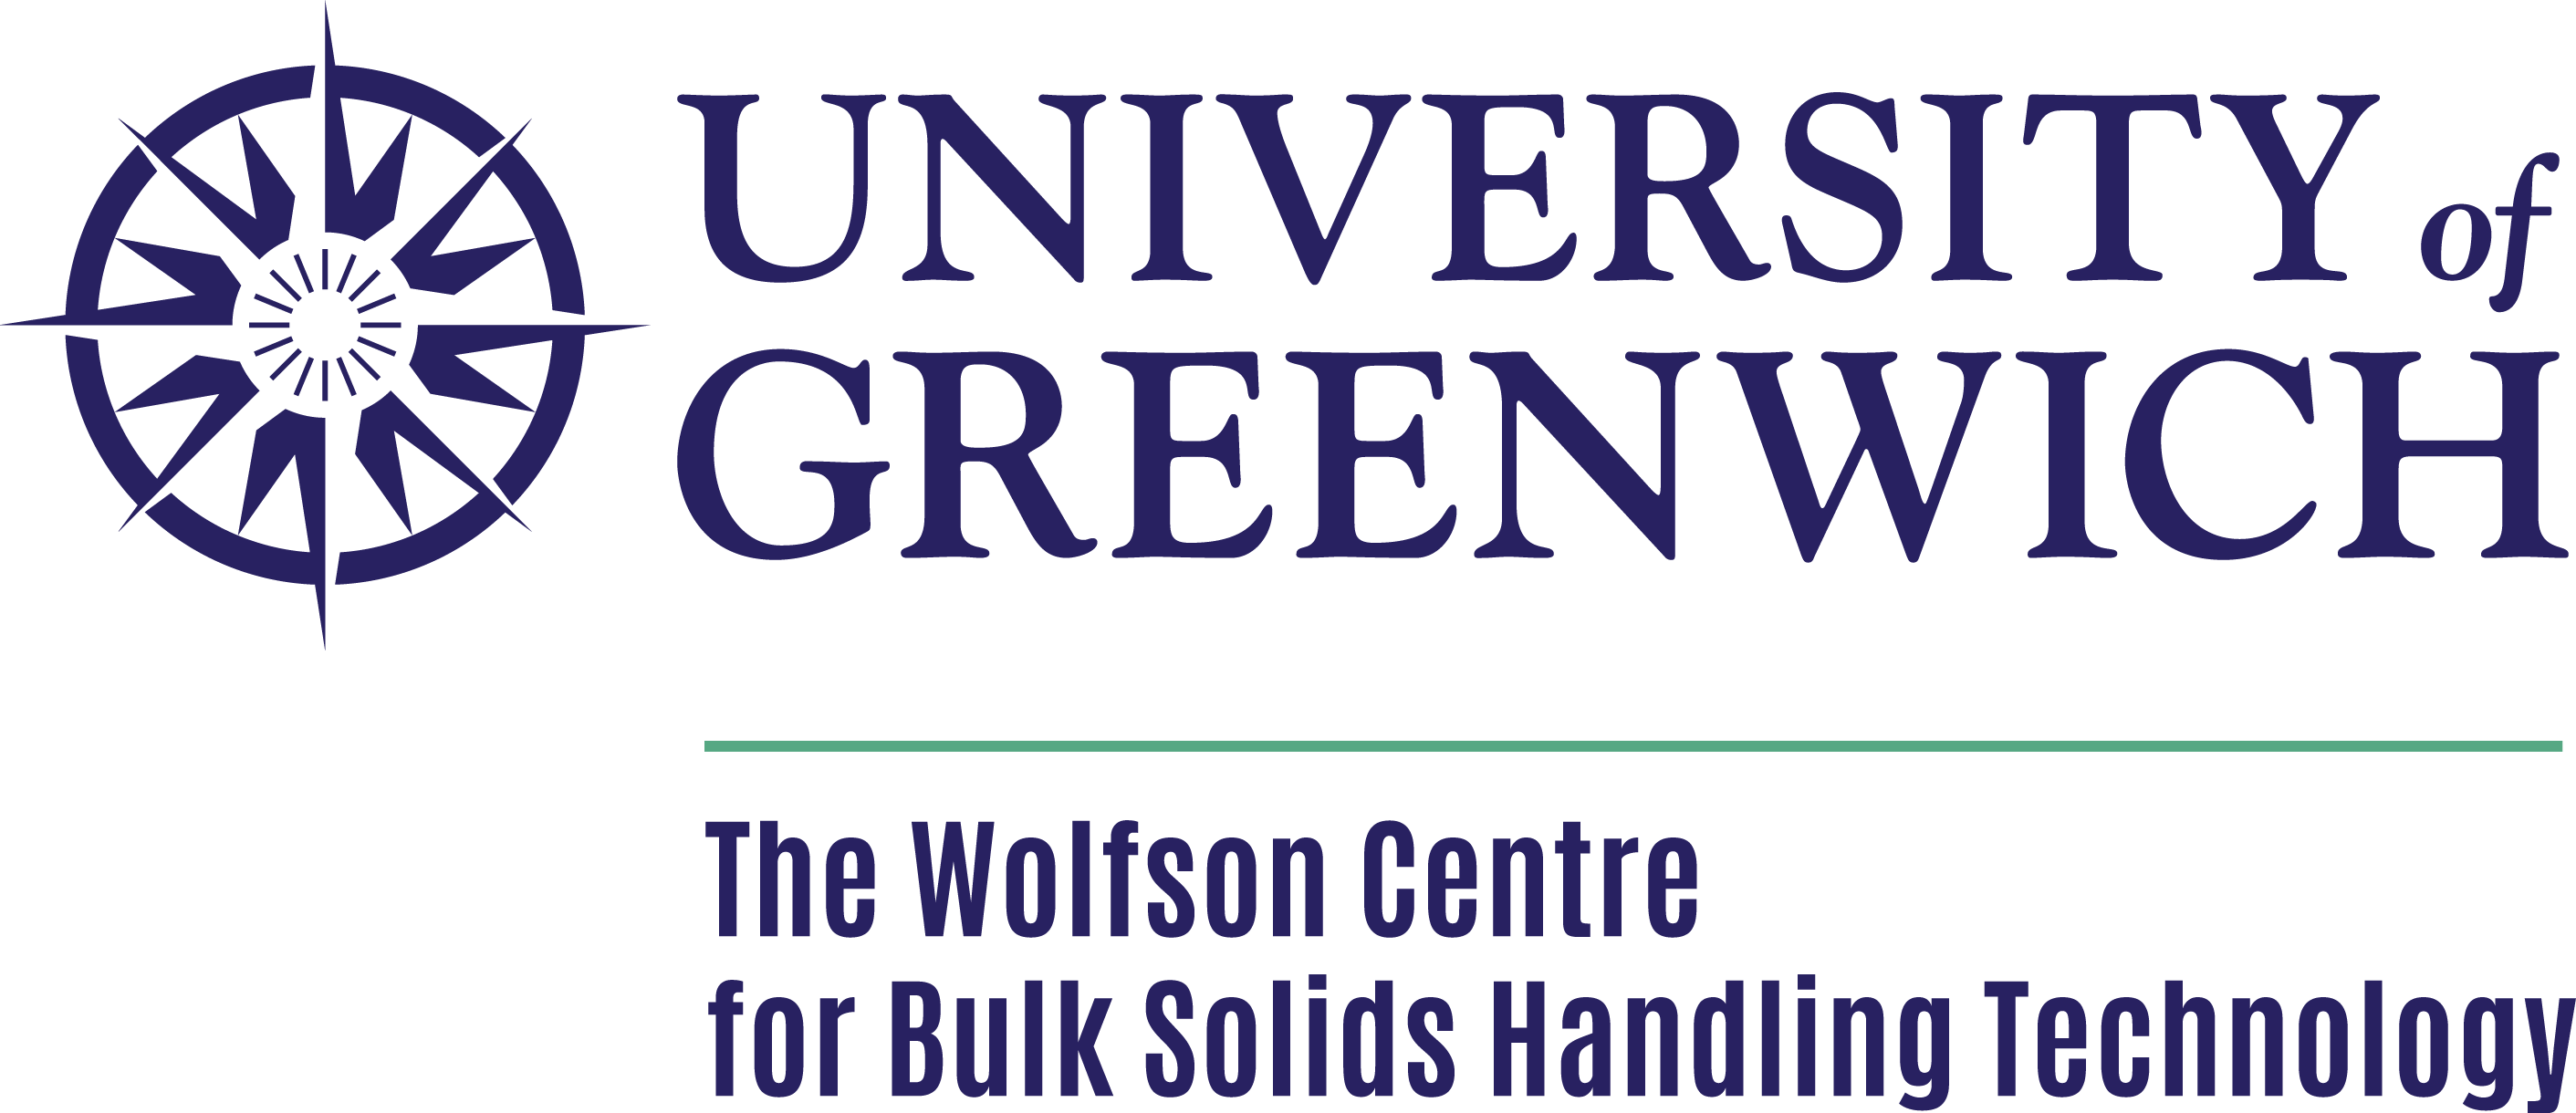 The Wolfson Centre for Bulk Solids Handling at the University of Greenwich logo.